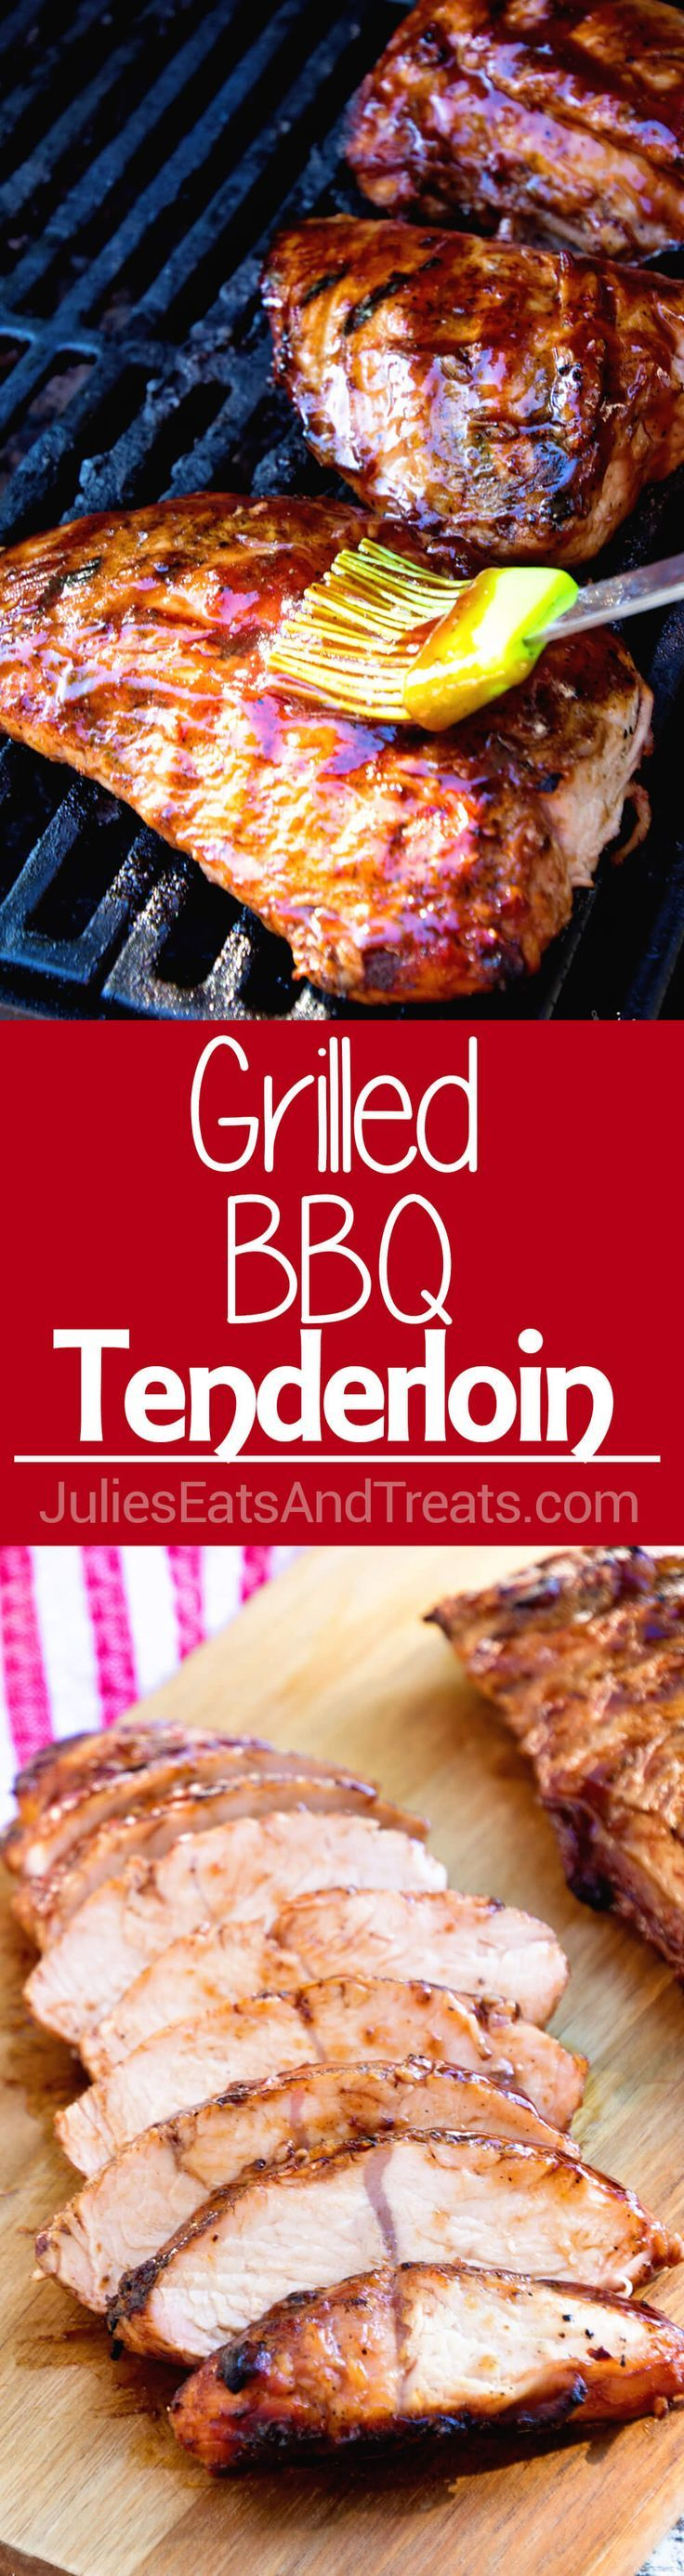 Grilled BBQ Tenderloin ~ Turkey Tenderloin Marinated in BBQ Sauce and Grilled to Perfection! Light, Healthy, Low Carb Meal! @jennieorecipes #ad